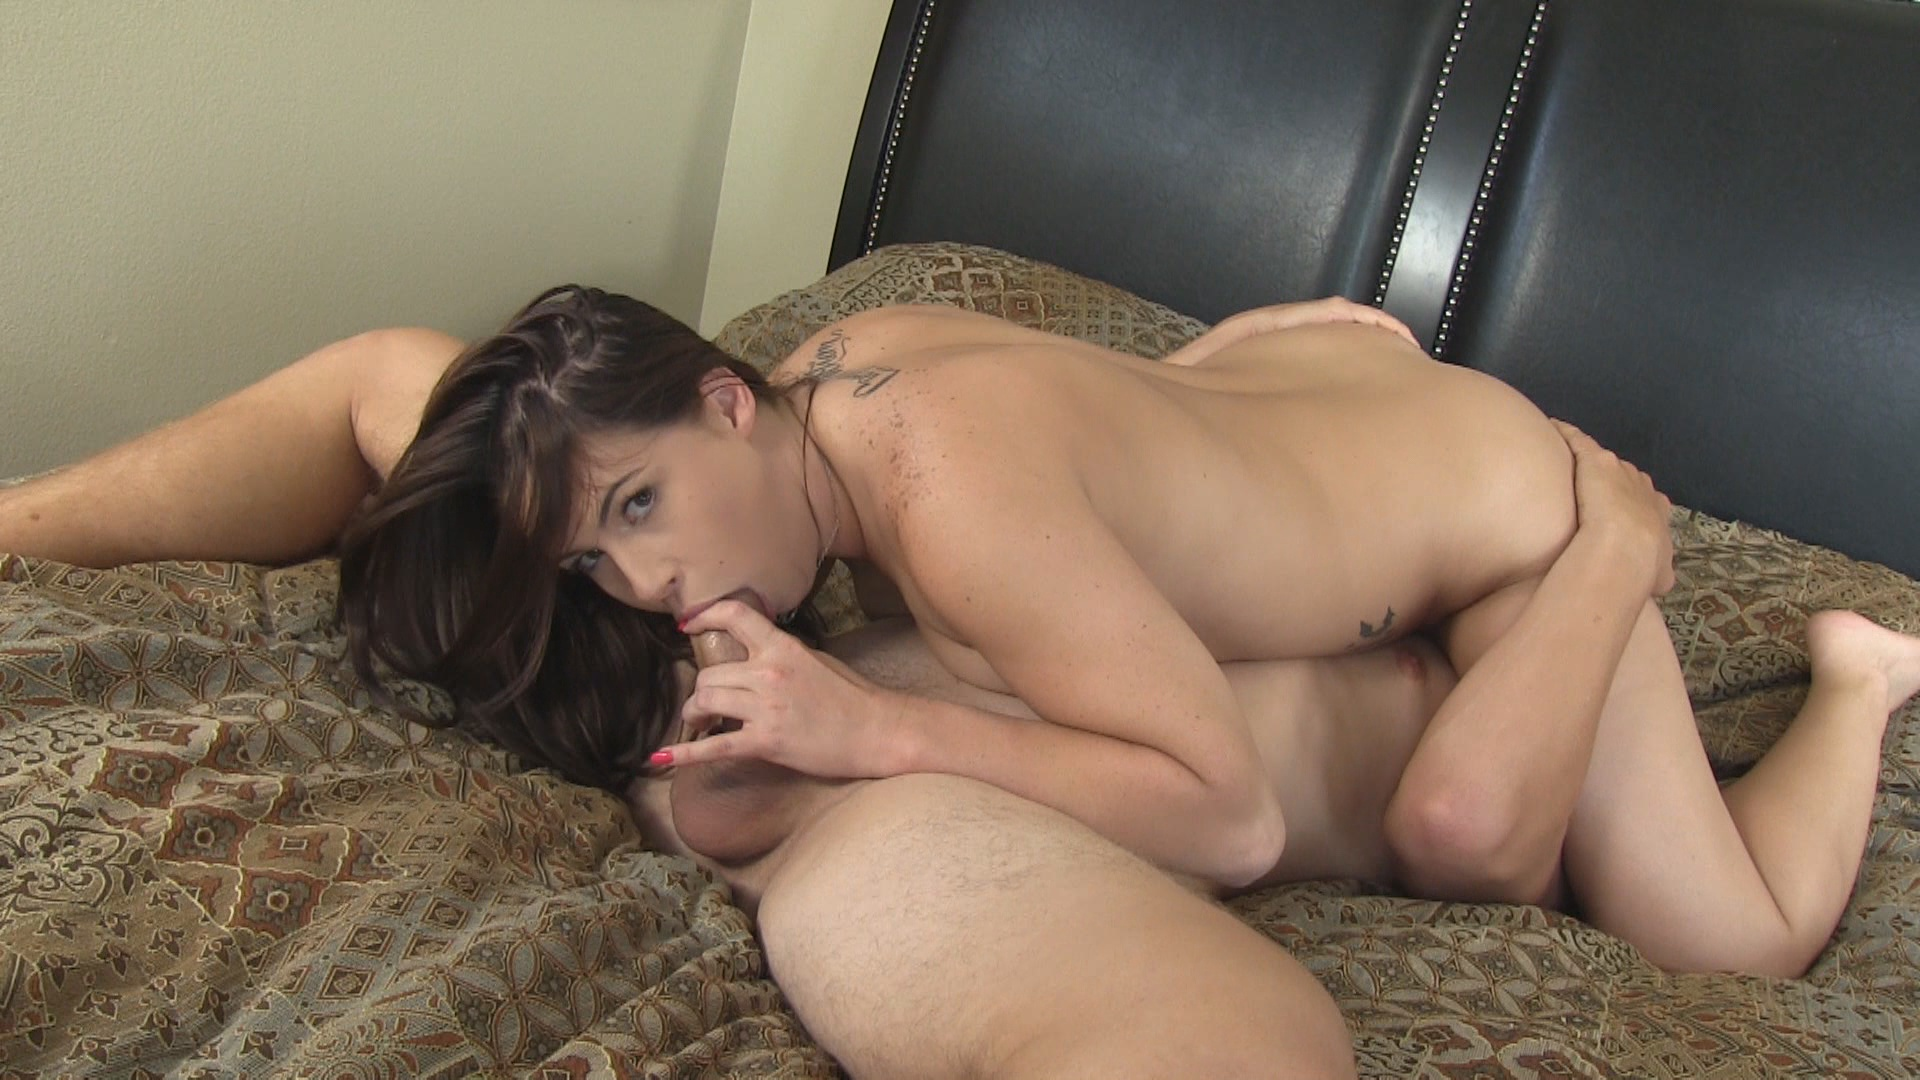 Morning Wood 3 Xvideos180603